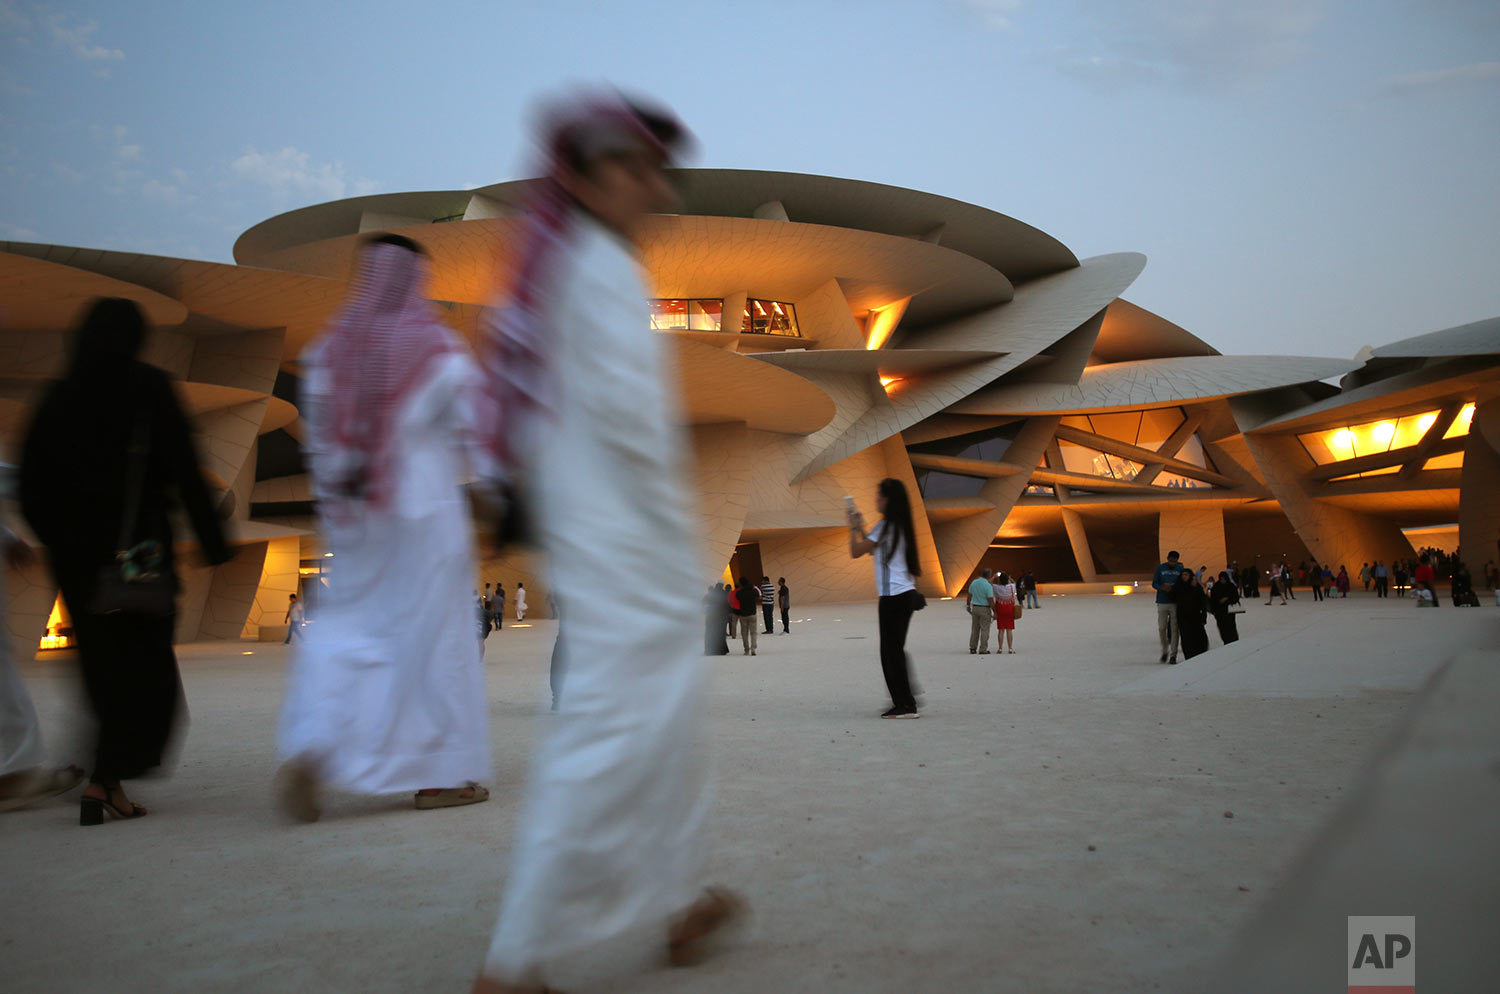 In this Saturday, April 20, 2019 photo, people visit the National Museum of Qatar designed by French architect, Jean Nouvel who got his inspiration from the desert rose crystal and has been opened on March 28th in Doha, Qatar. (AP Photo/Kamran Jebreili)